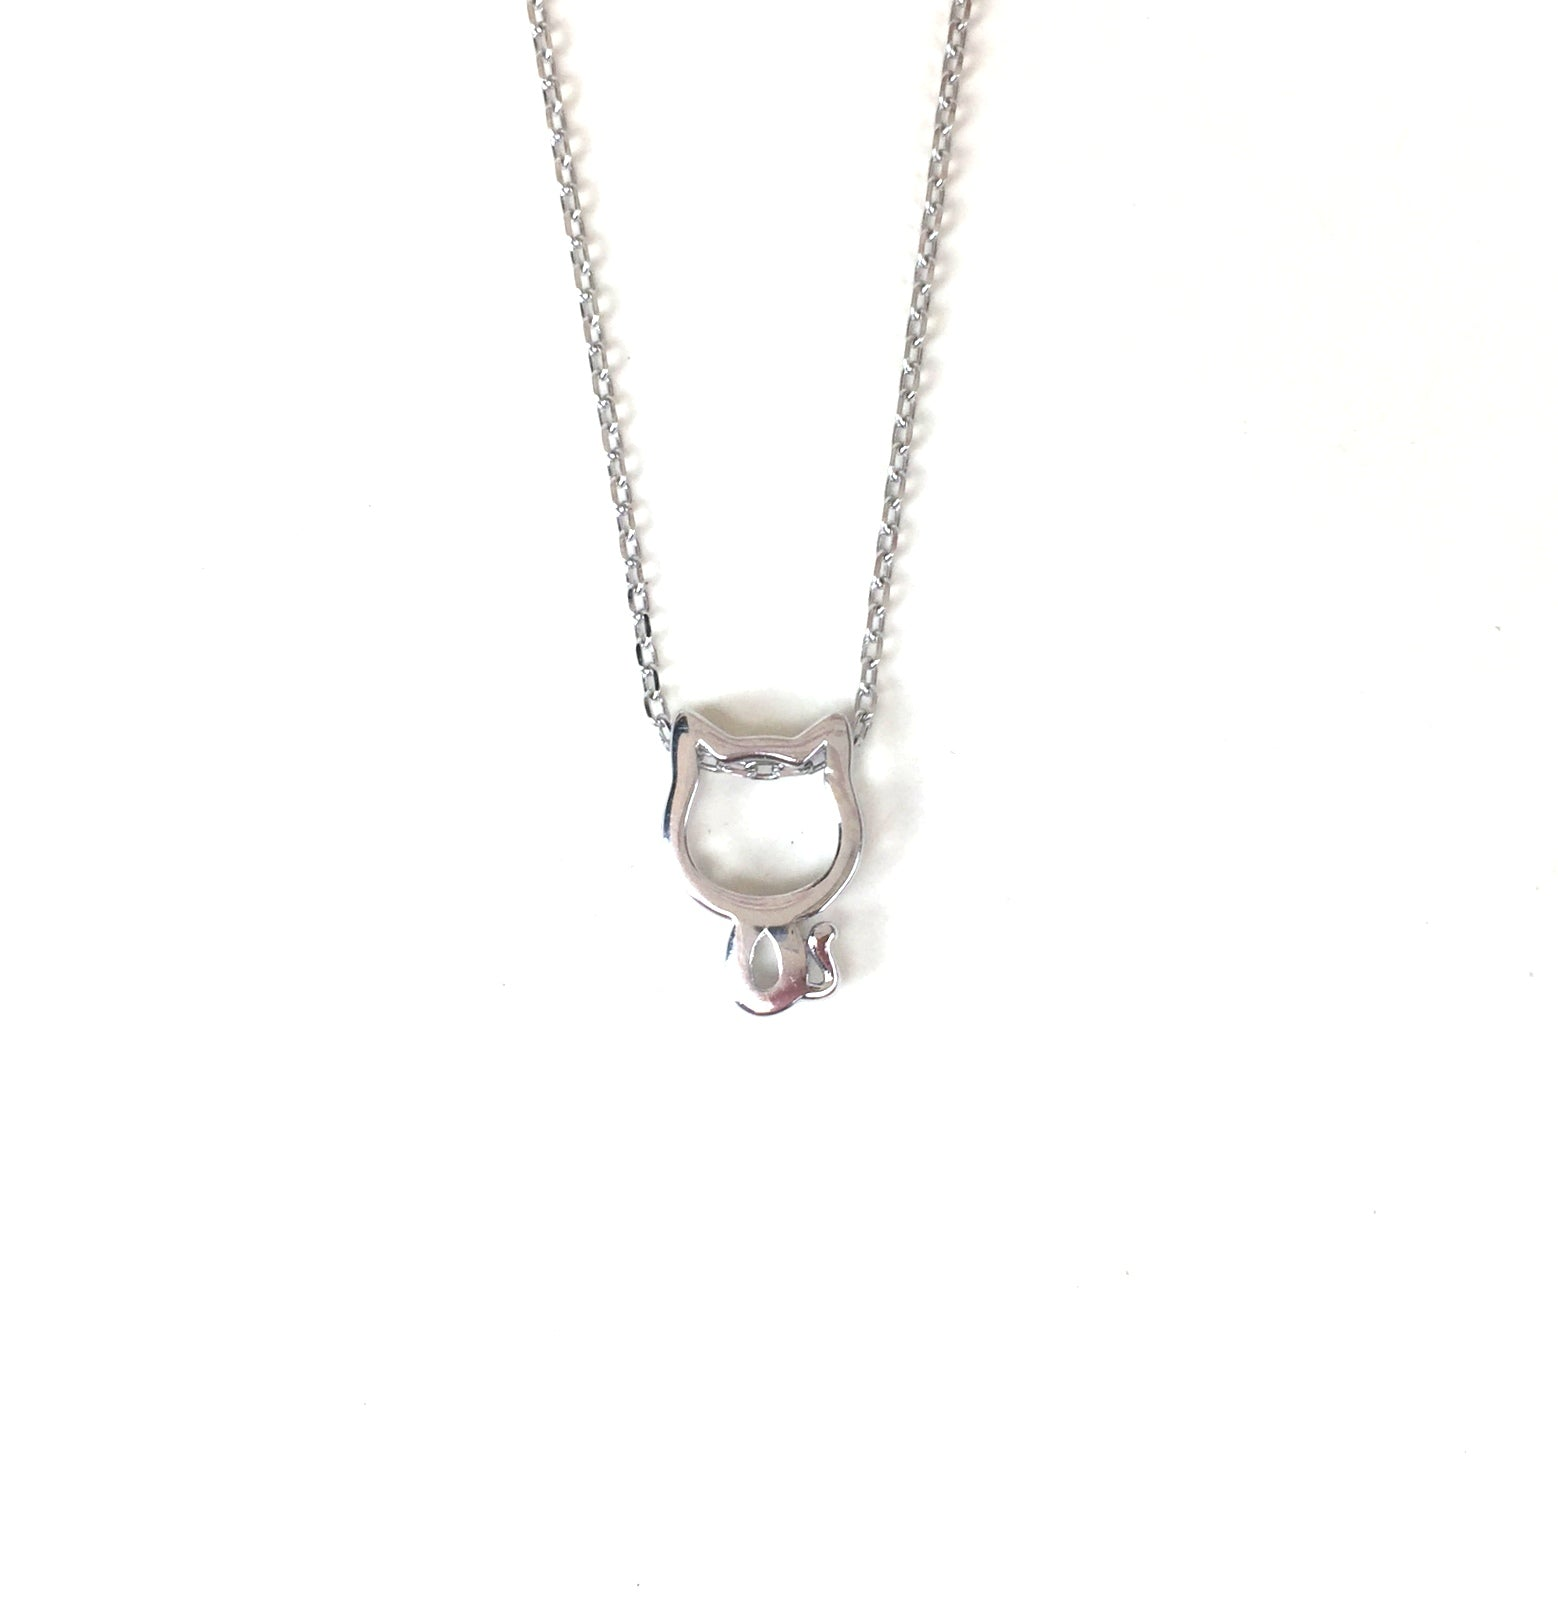 LITTLE CAT STERLING SILVER NECKLACE